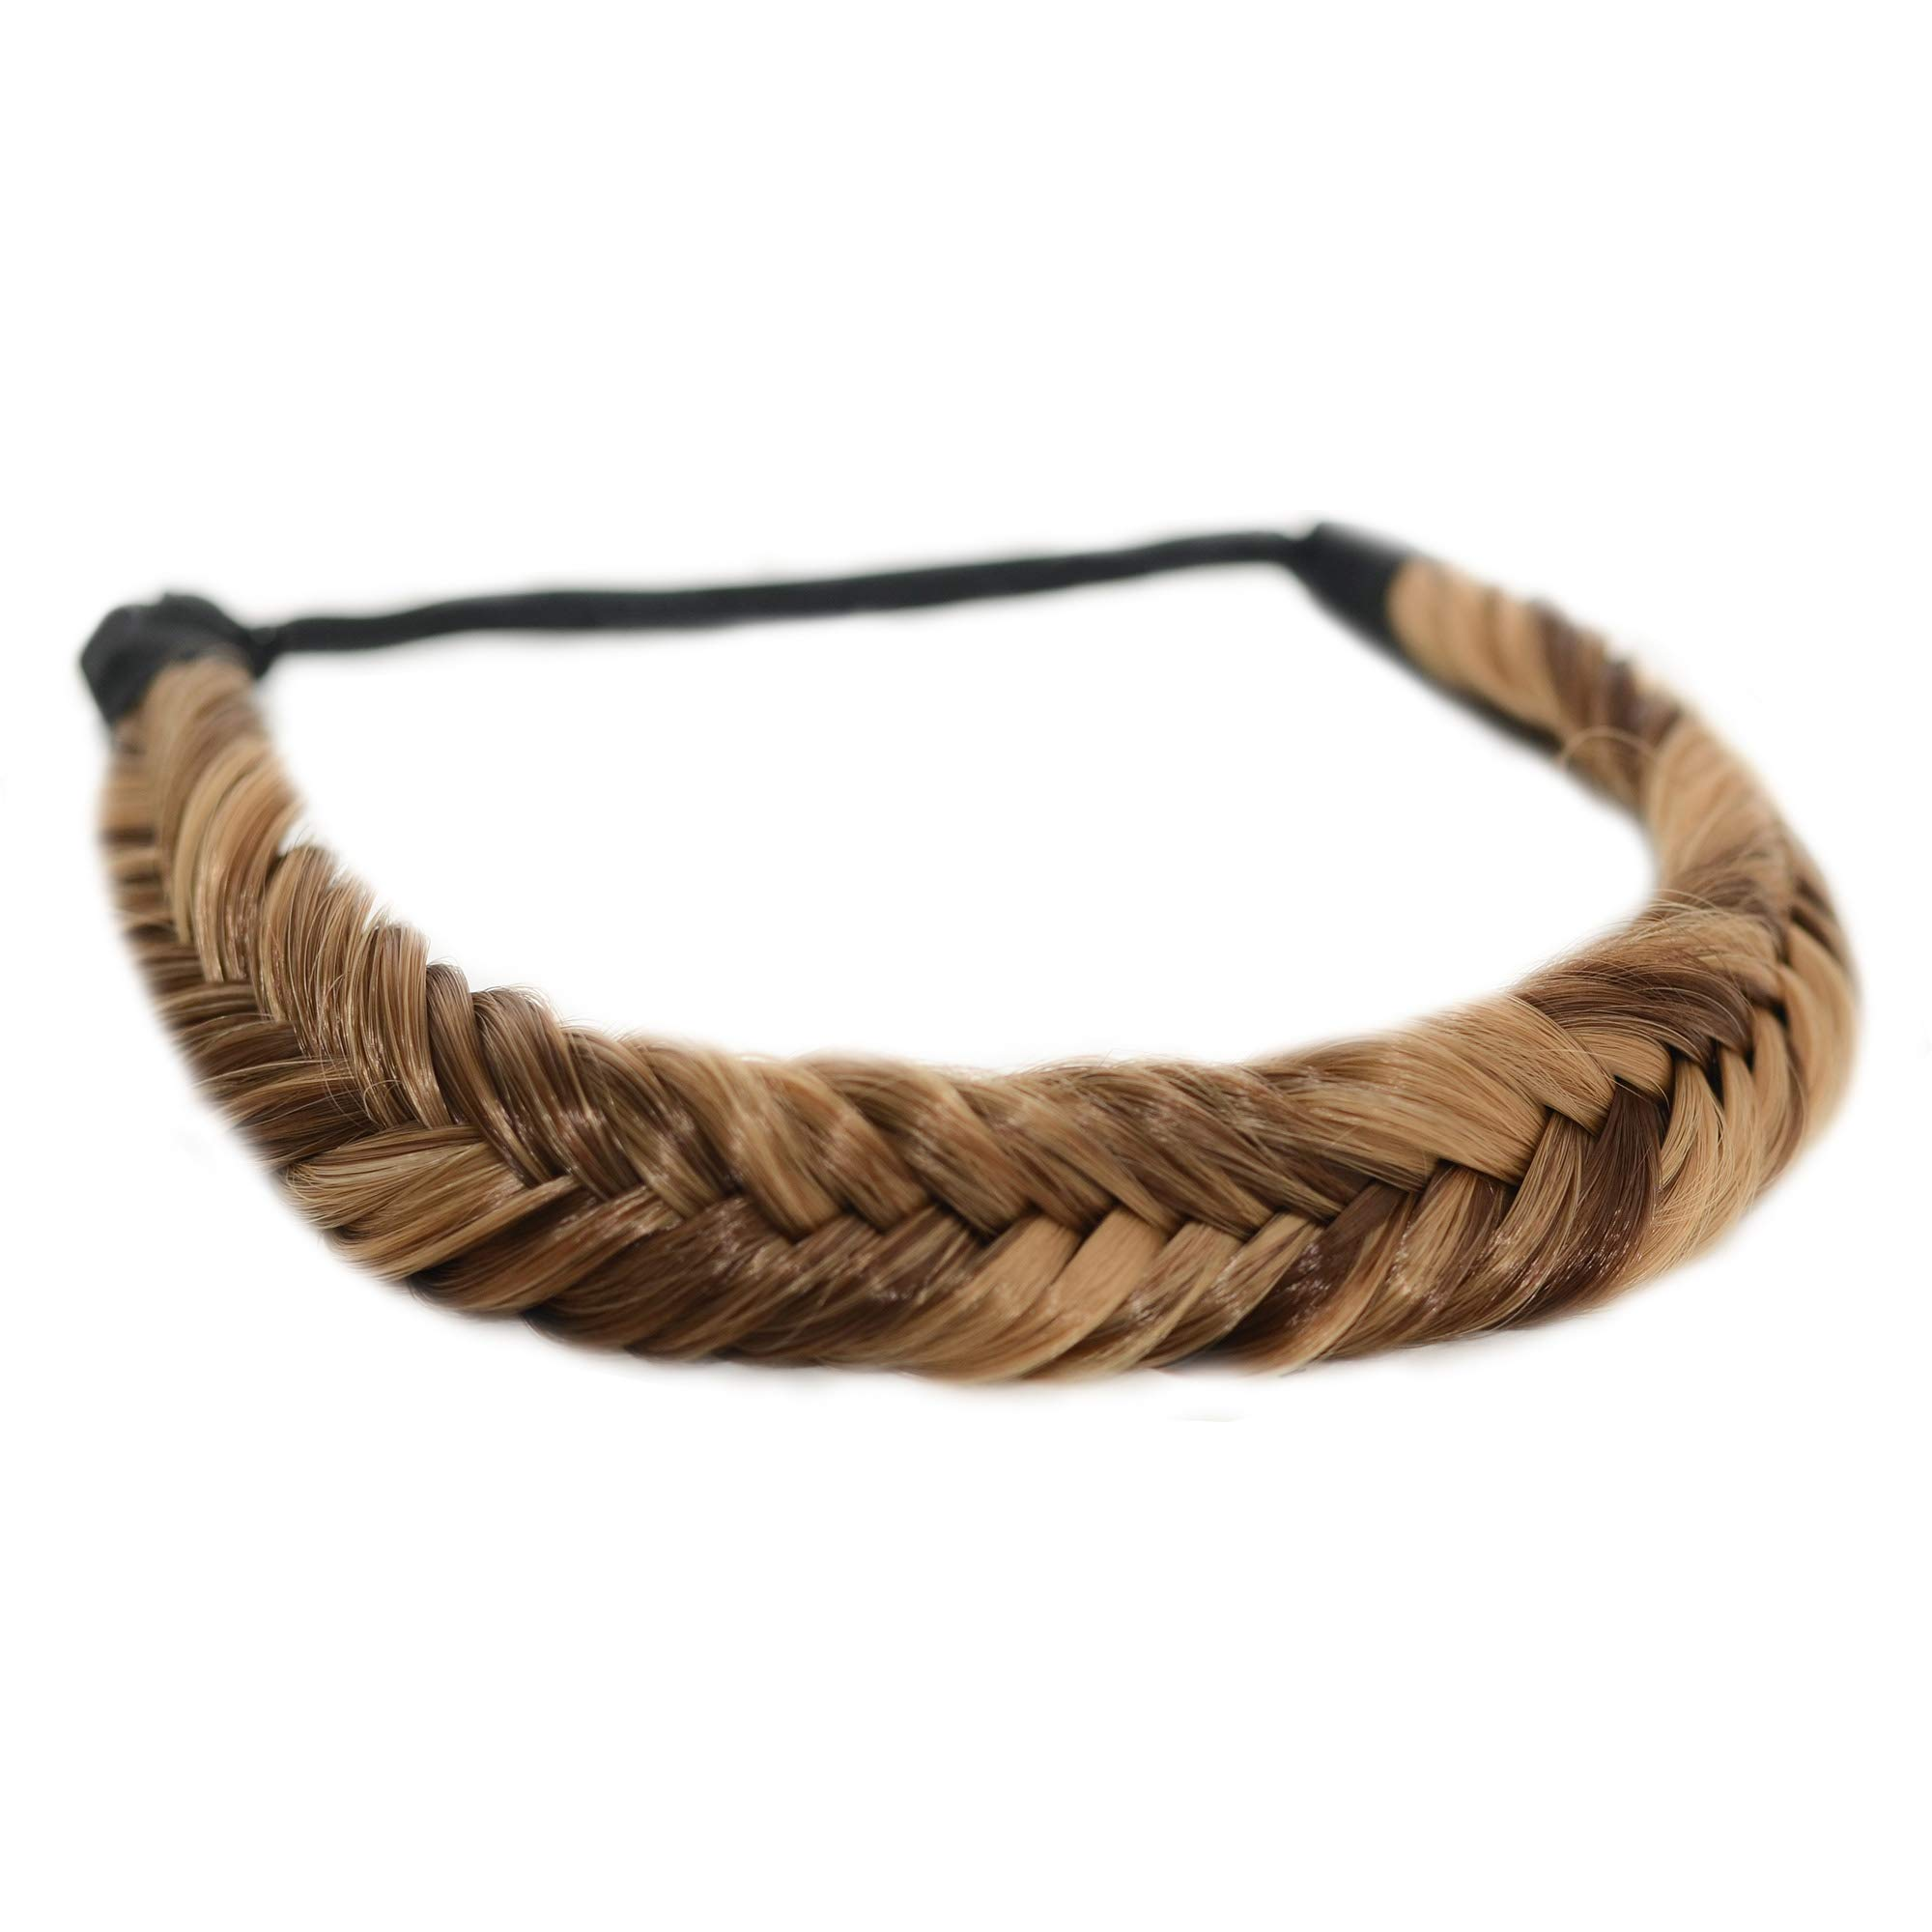 Madison Braids Women's Headband Hair Braid Natural Looking Synthetic Hair Piece Extension - Arisa Fishtail - Highlighted by MADISON BRAIDS